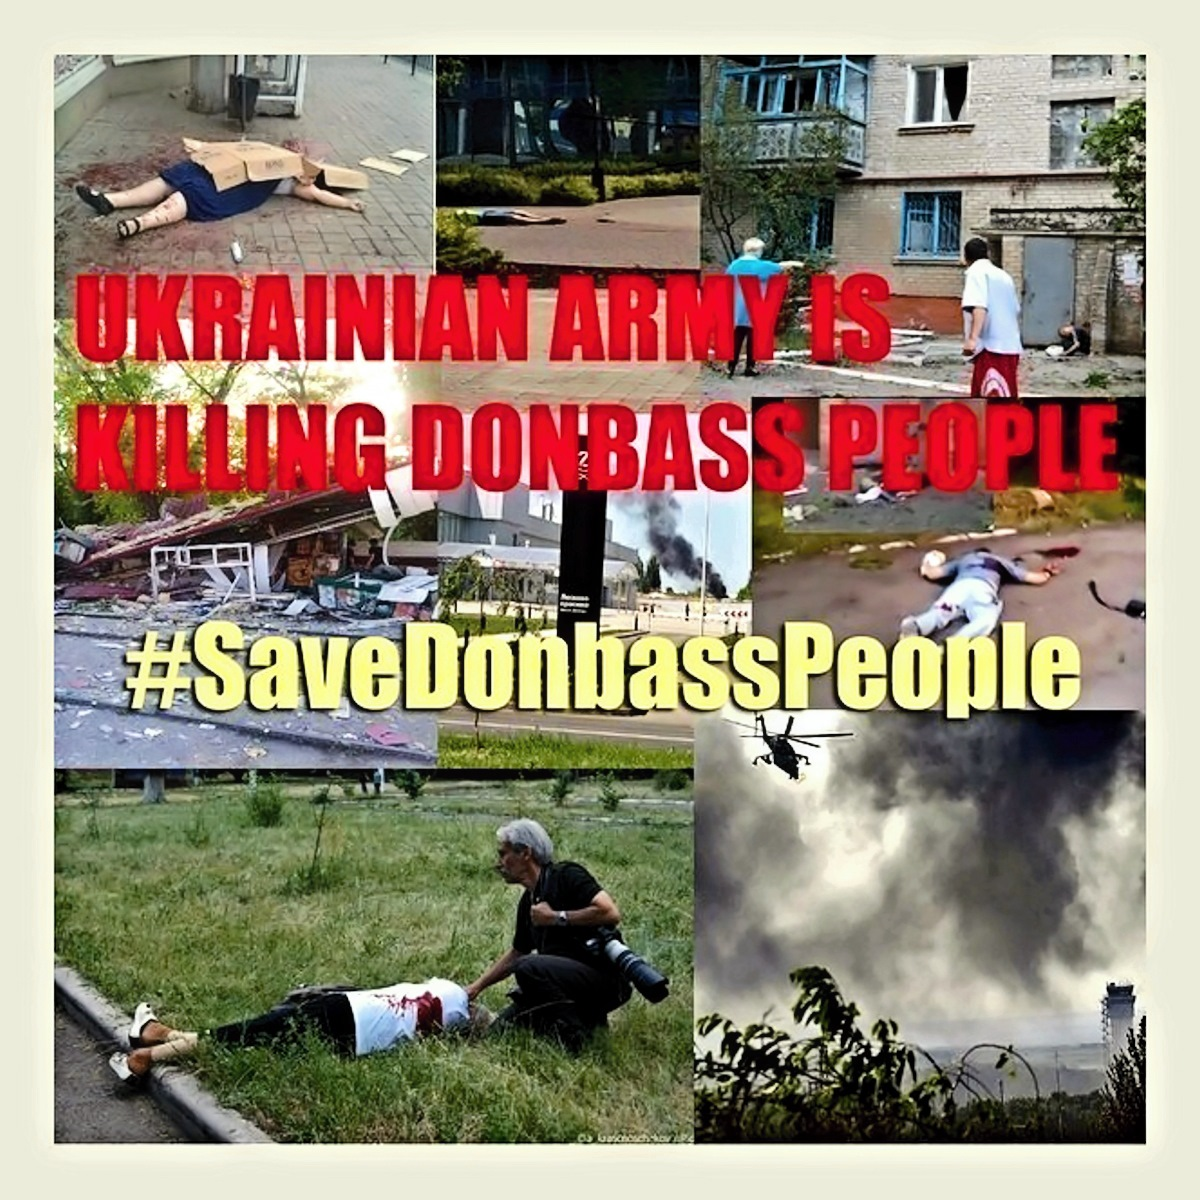 00 #savedonbasspeople 05. 29.05.14